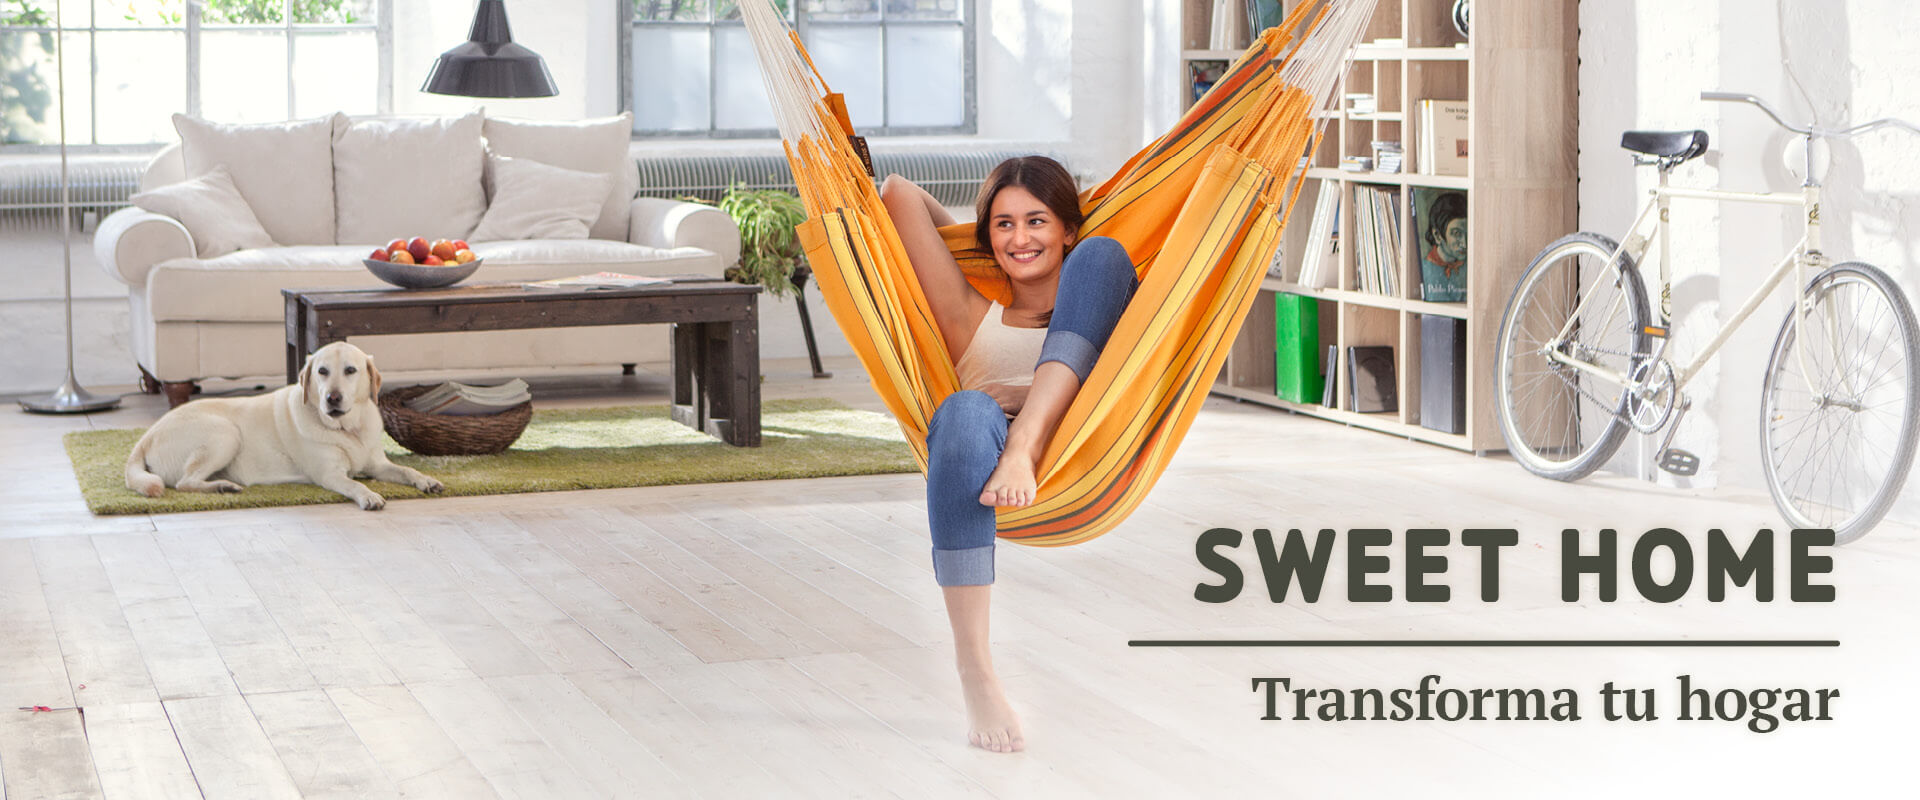 Sweet Home - Transforma tu hogar